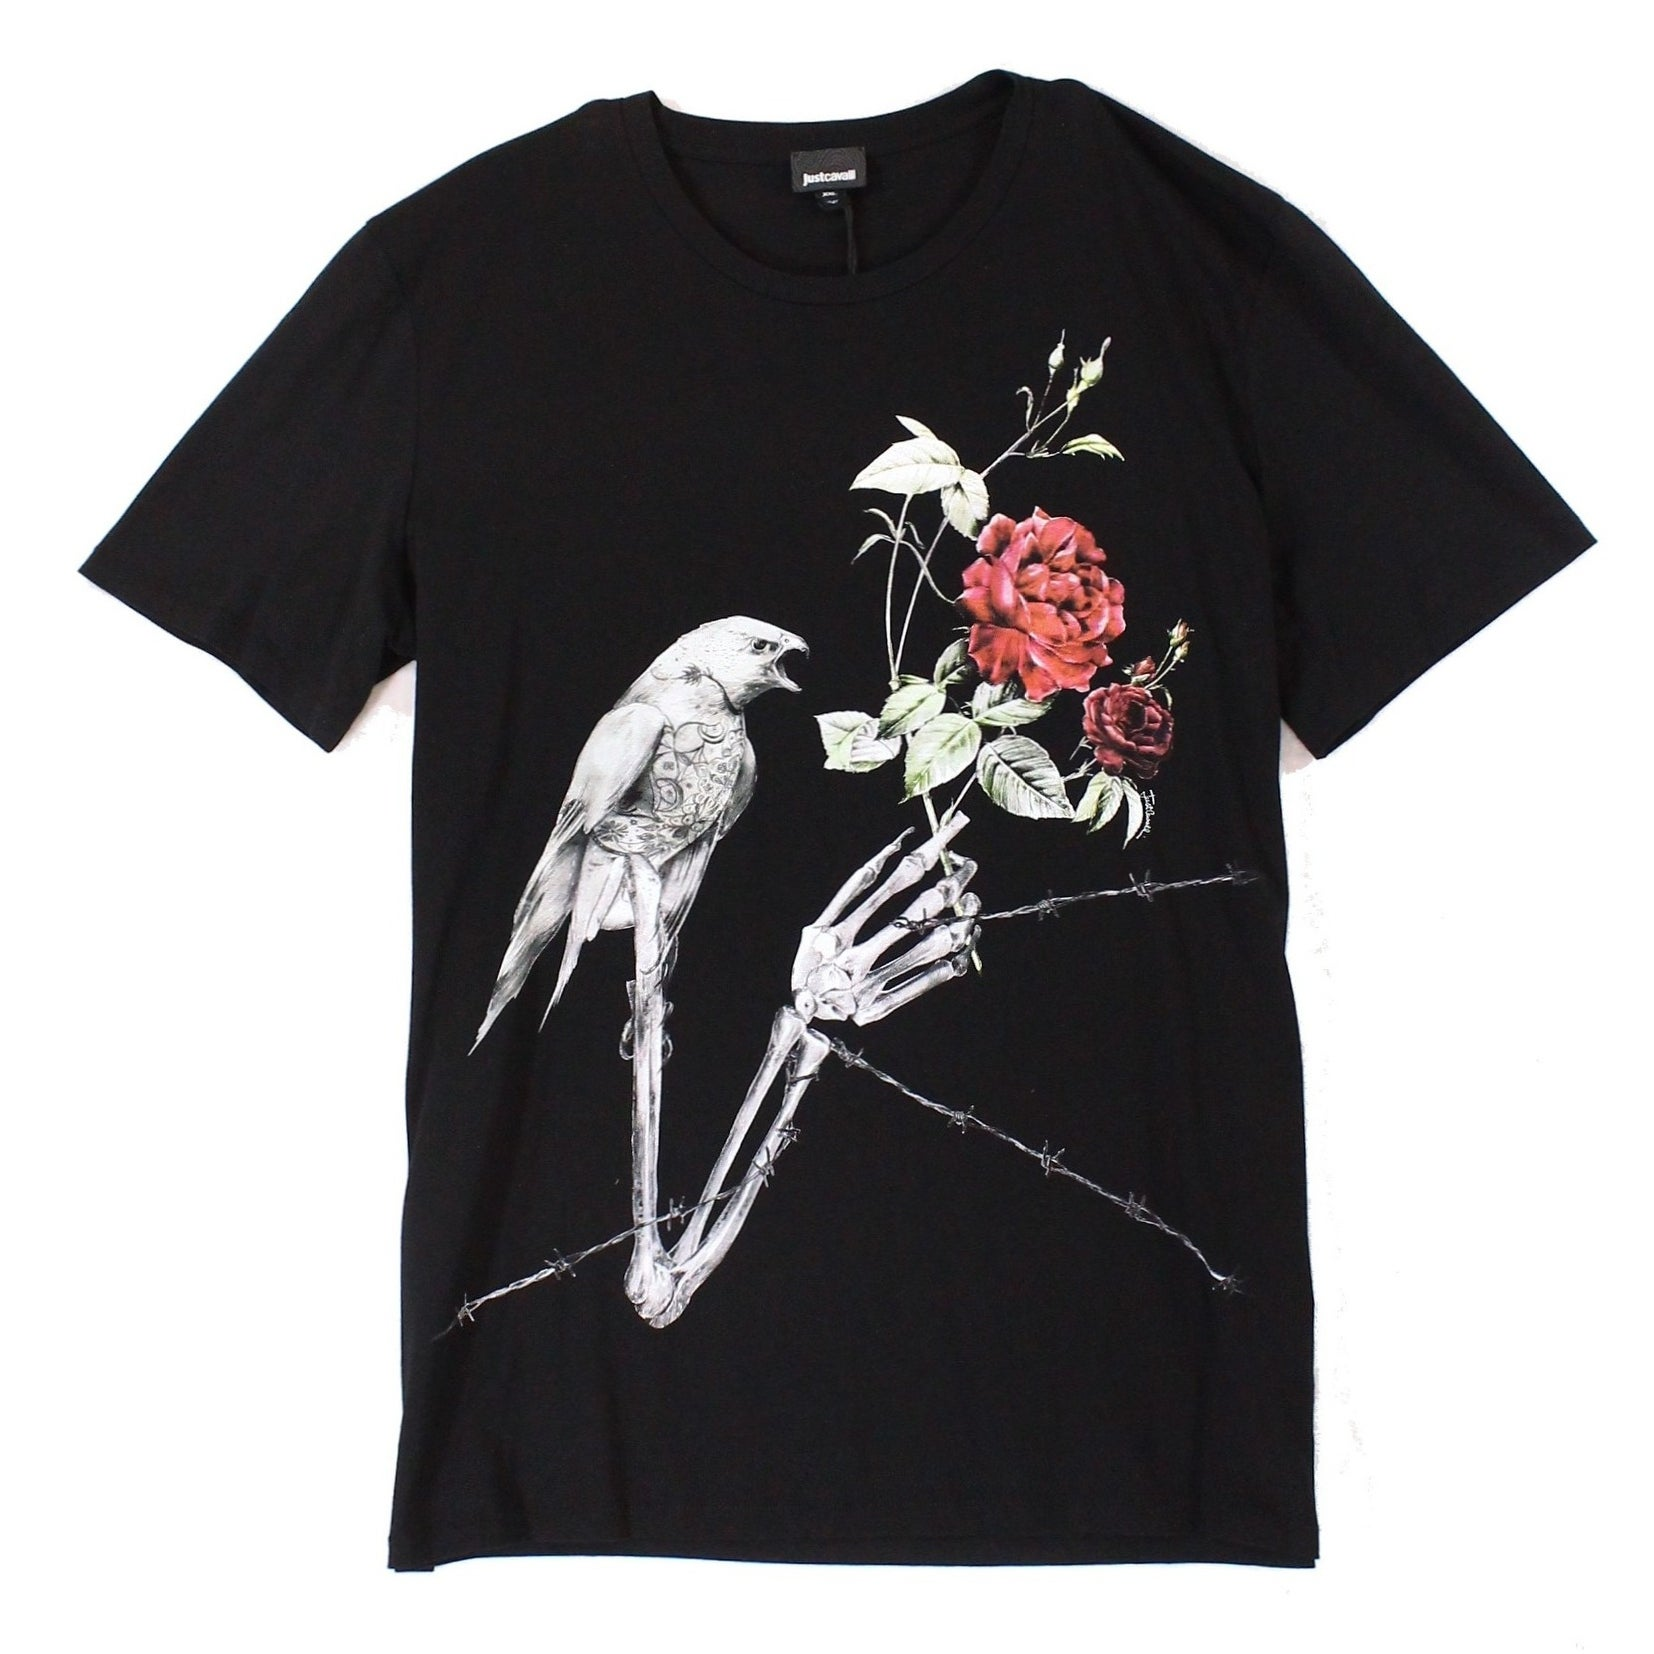 6325735279 Shop Just Cavalli Black Mens Size 2XL Bird Graphic Print Tee T-Shirt - Free  Shipping Today - Overstock - 22334844